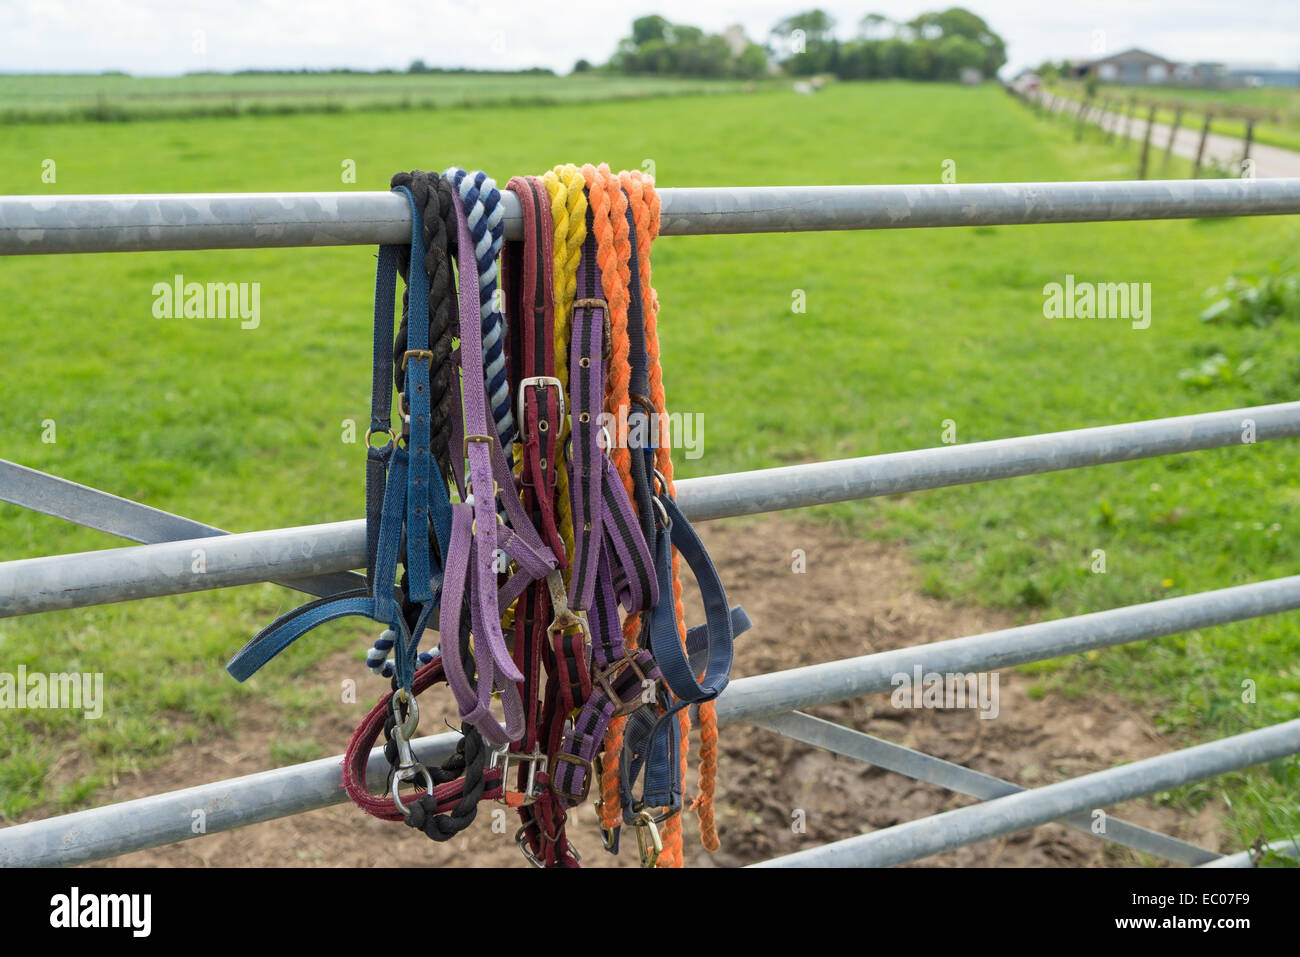 Colourful horse reins and harnesses hanging on a farm gate. - Stock Image